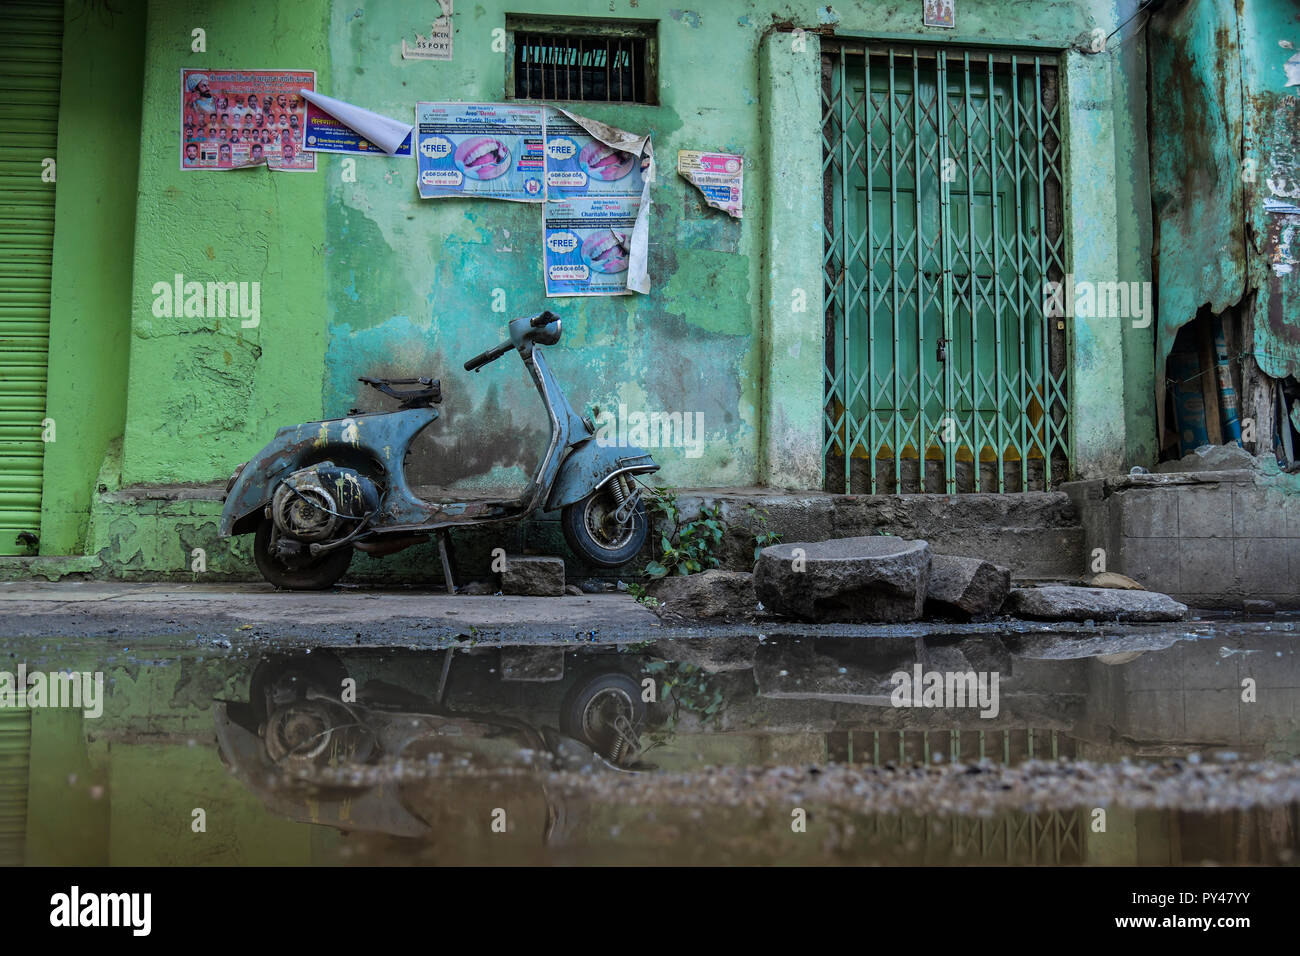 Antique scooter in stagnant water resulted this reflection thus making beautiful composition. - Stock Image